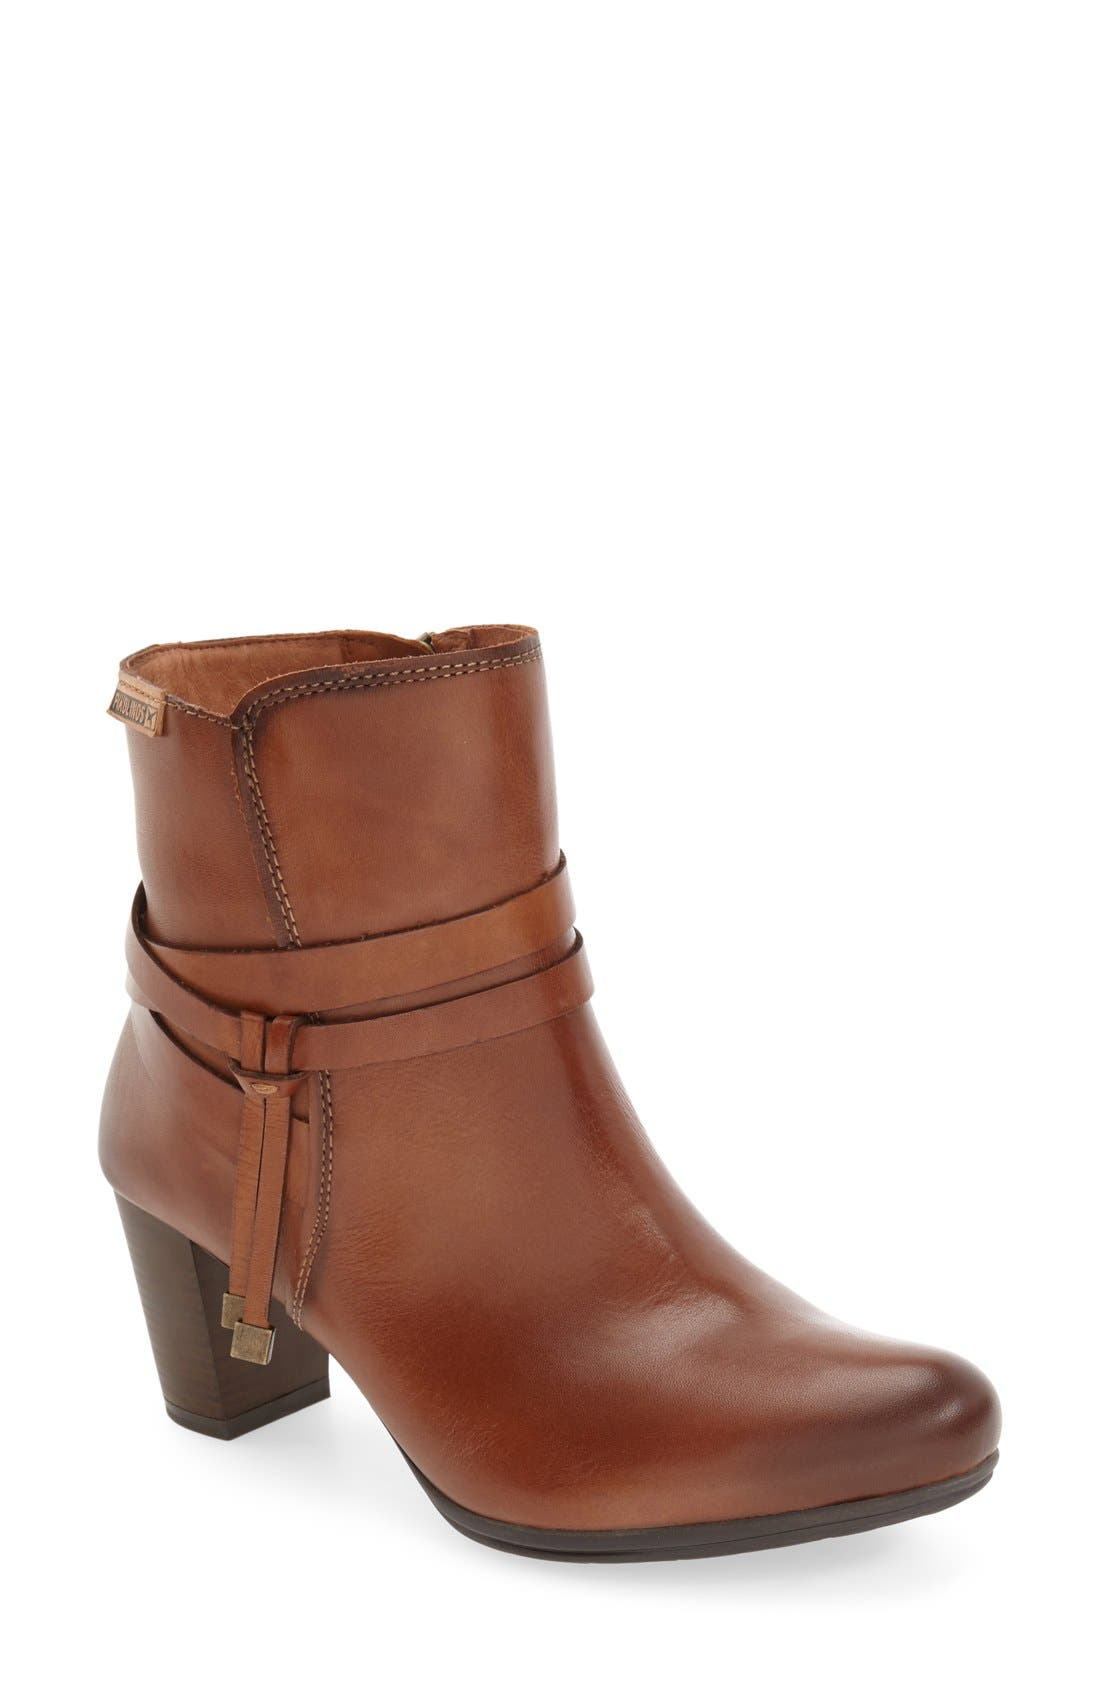 'Verona' Bootie,                             Main thumbnail 1, color,                             CUERO LEATHER